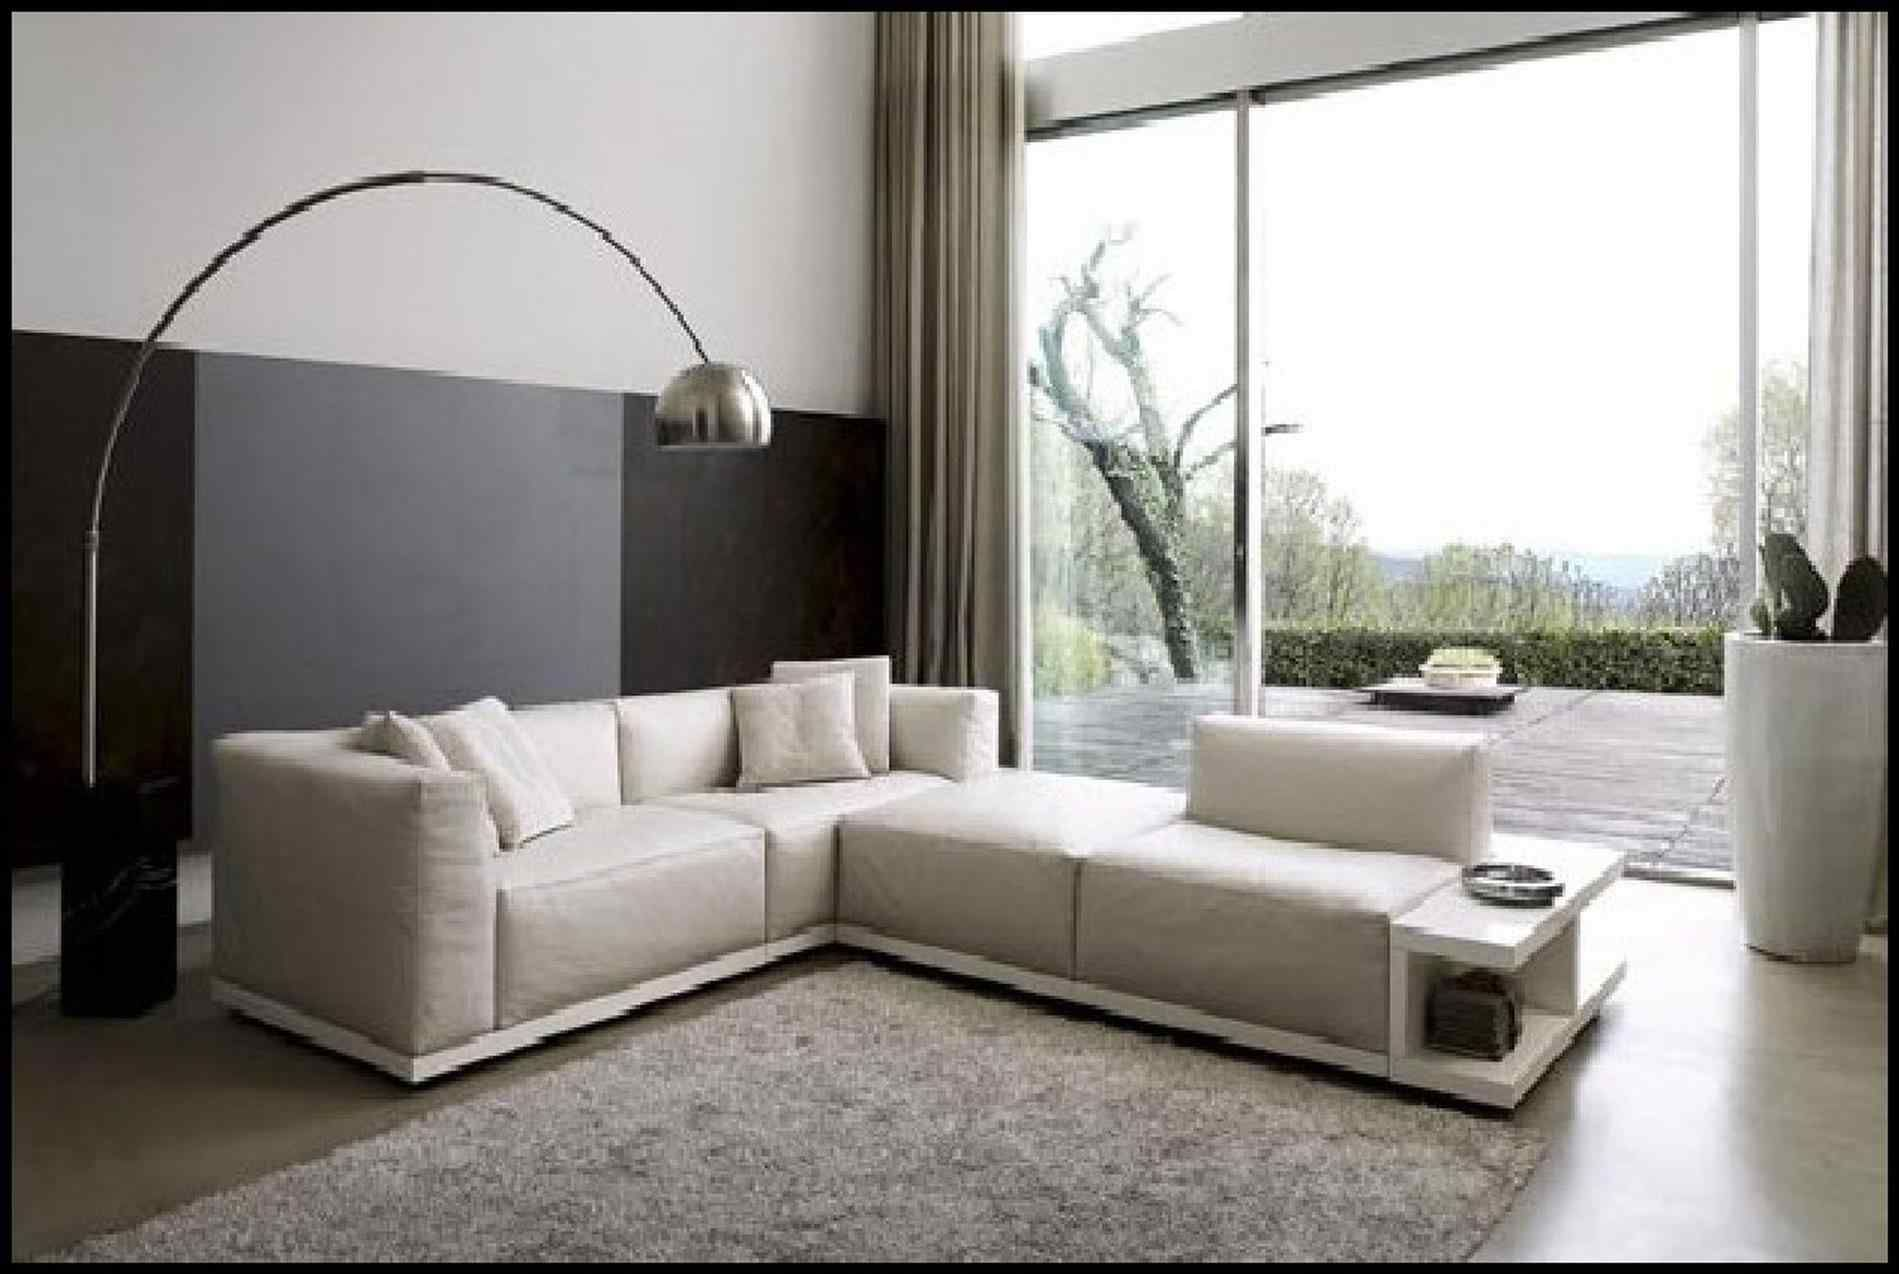 Brown Velvet Sofa Menzilperdenet Furniture Modern Cheap Couch With Unique Coffee Table Furniture Sectional Sofas For Small Areas Modern Cheap Co With Images Living Room Sofa